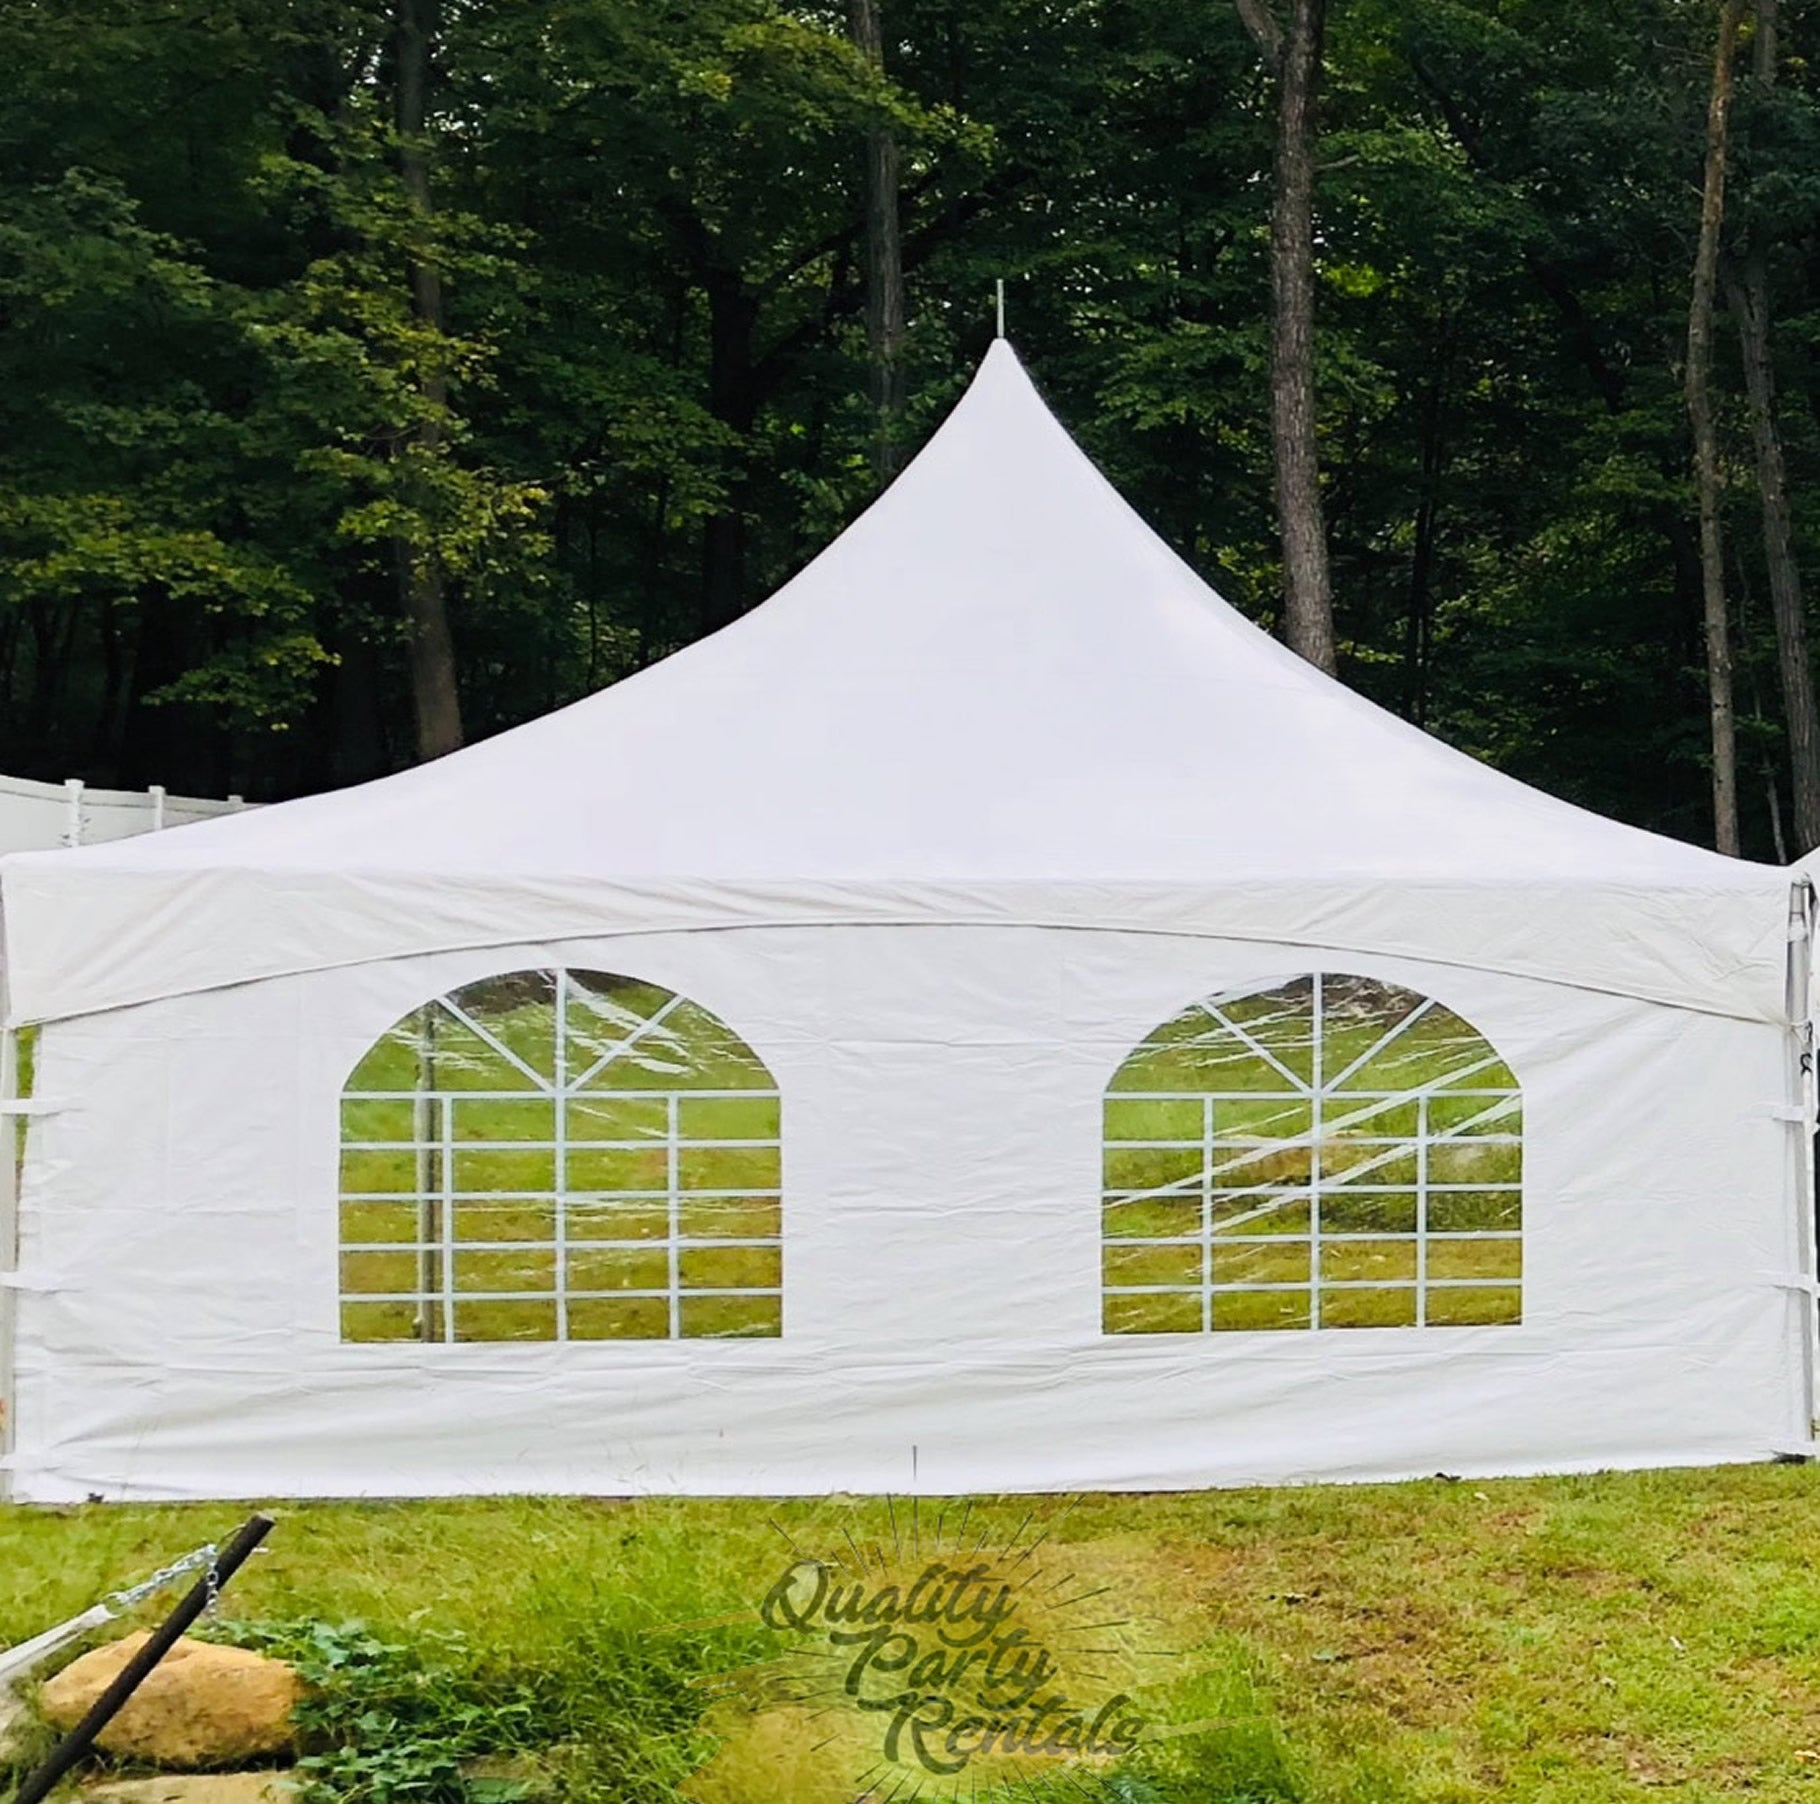 20x20 Party Rental Package #1 – qualitypartyrentals